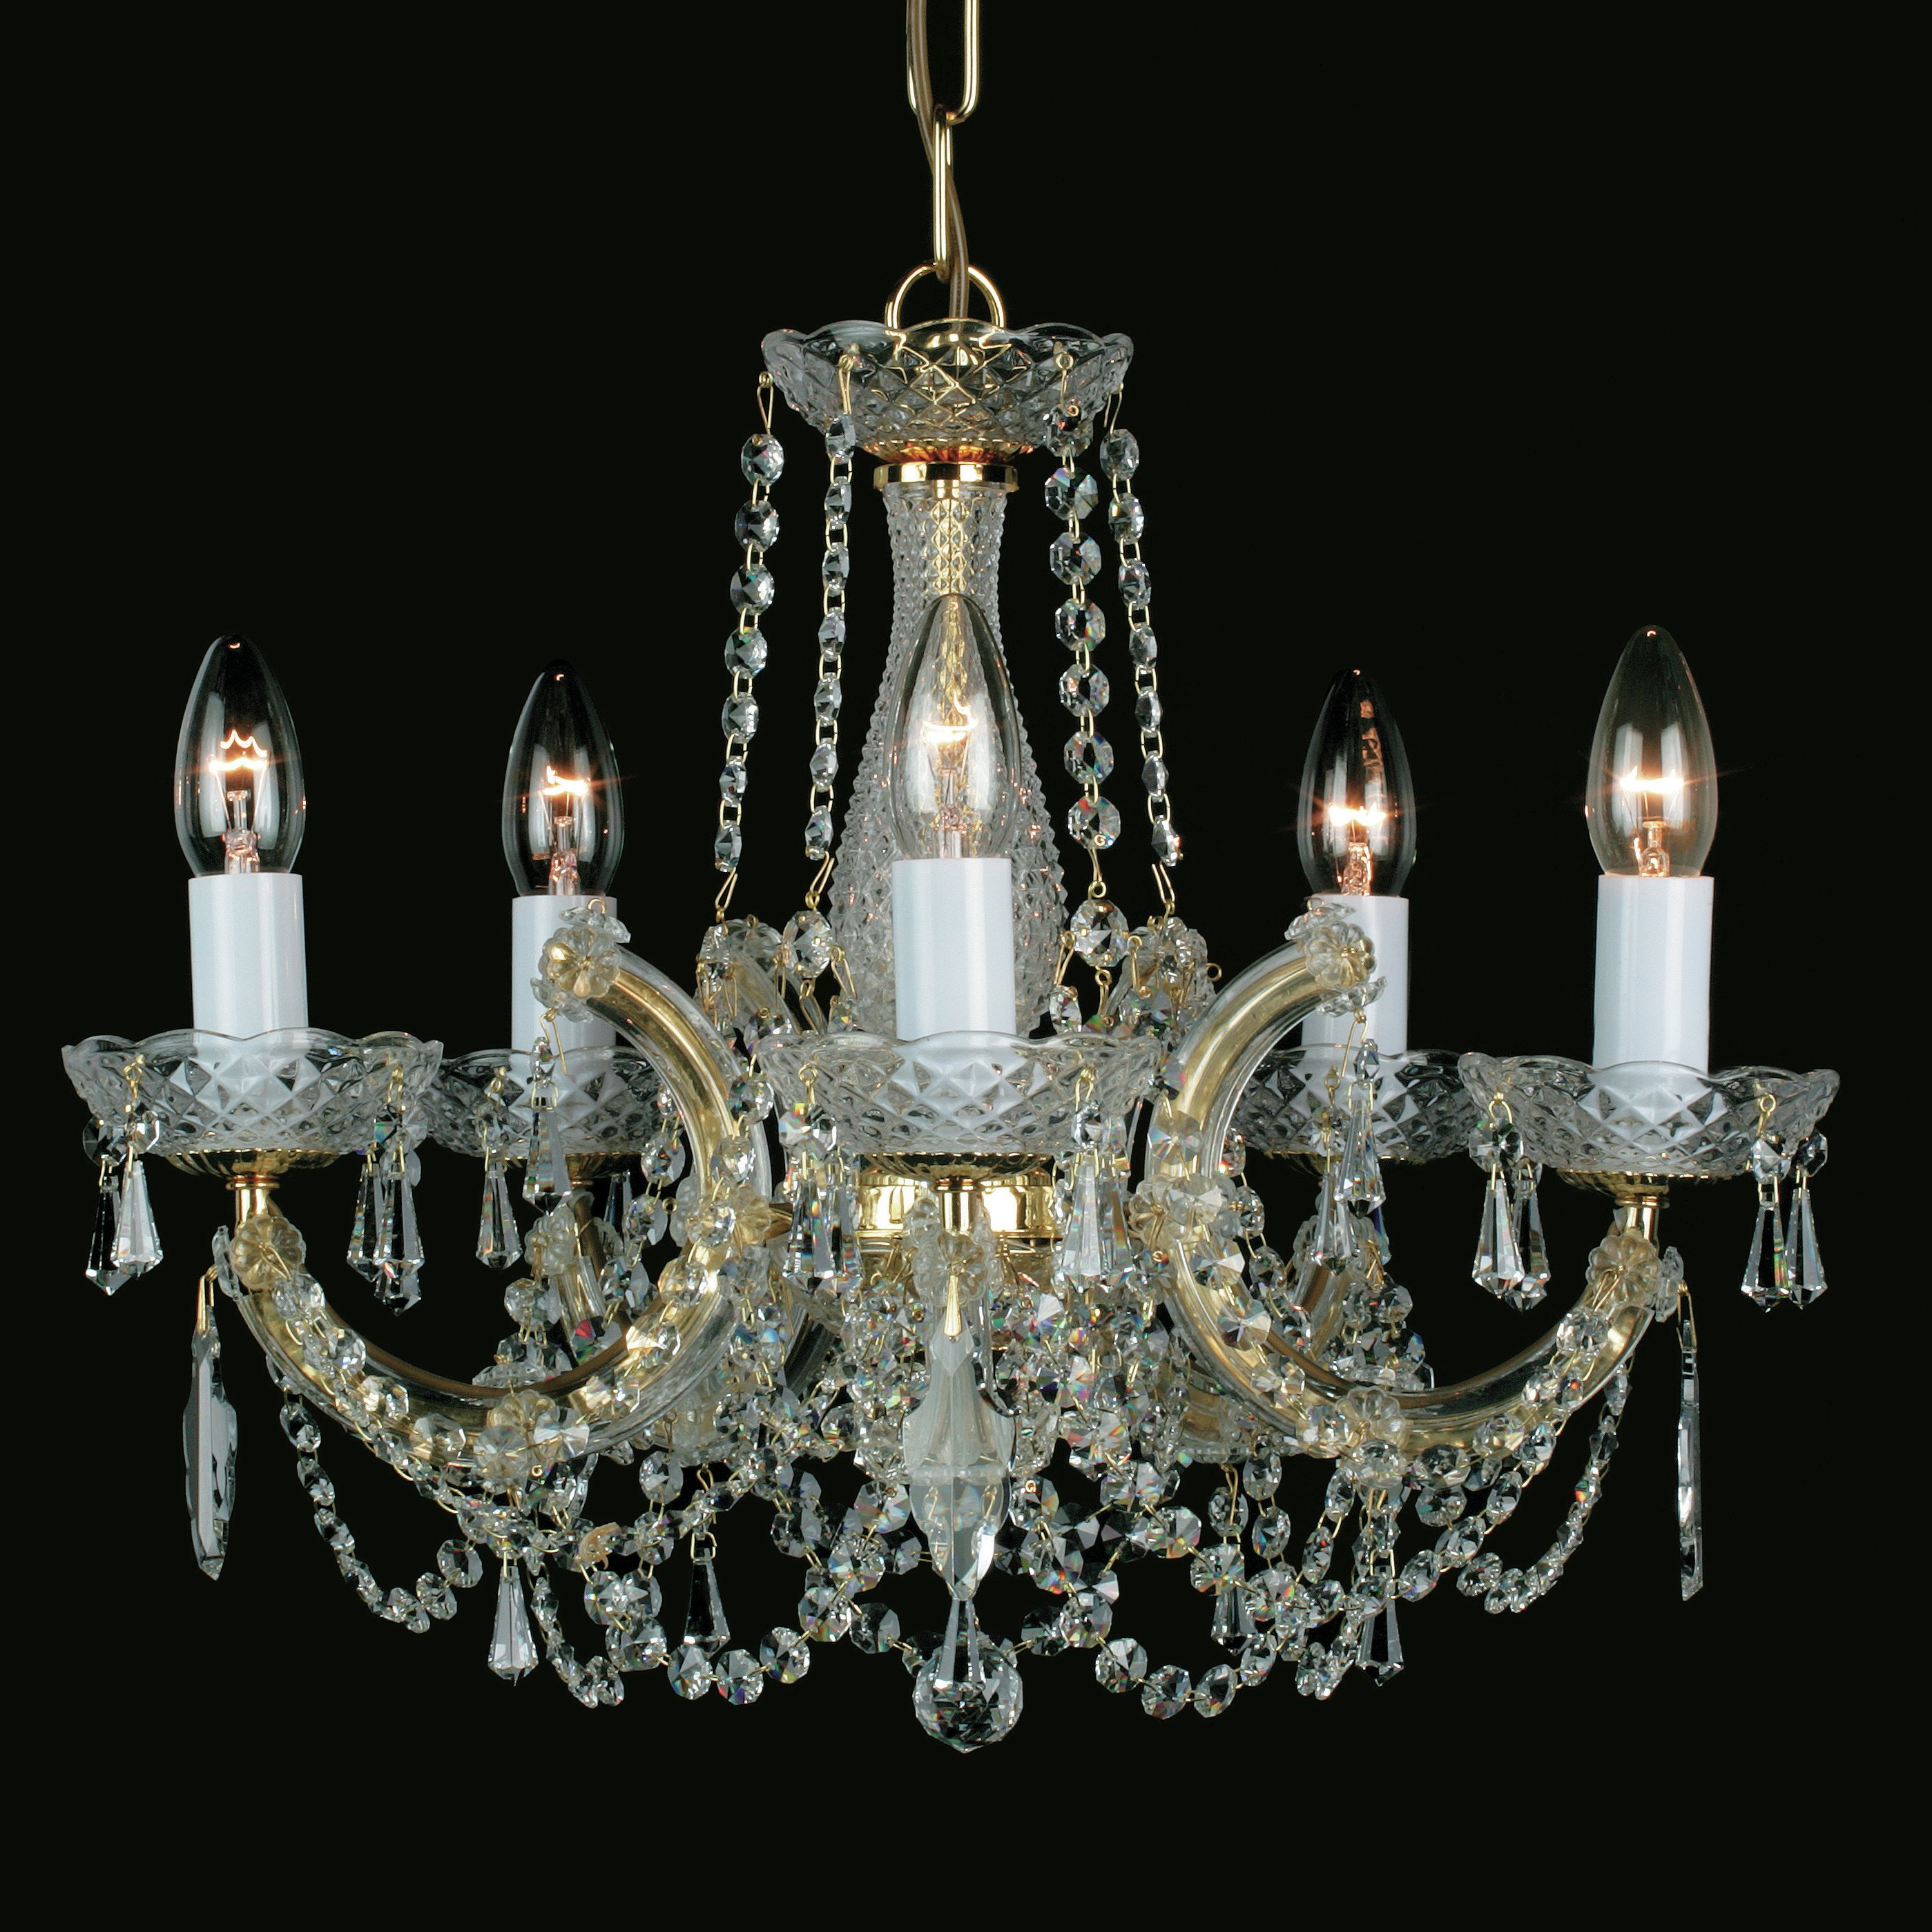 Thresa 5 Light Shaded Chandeliers In Preferred Impex Lighting Marie Theresa 5 Light Candle Style Chandelier (View 12 of 20)